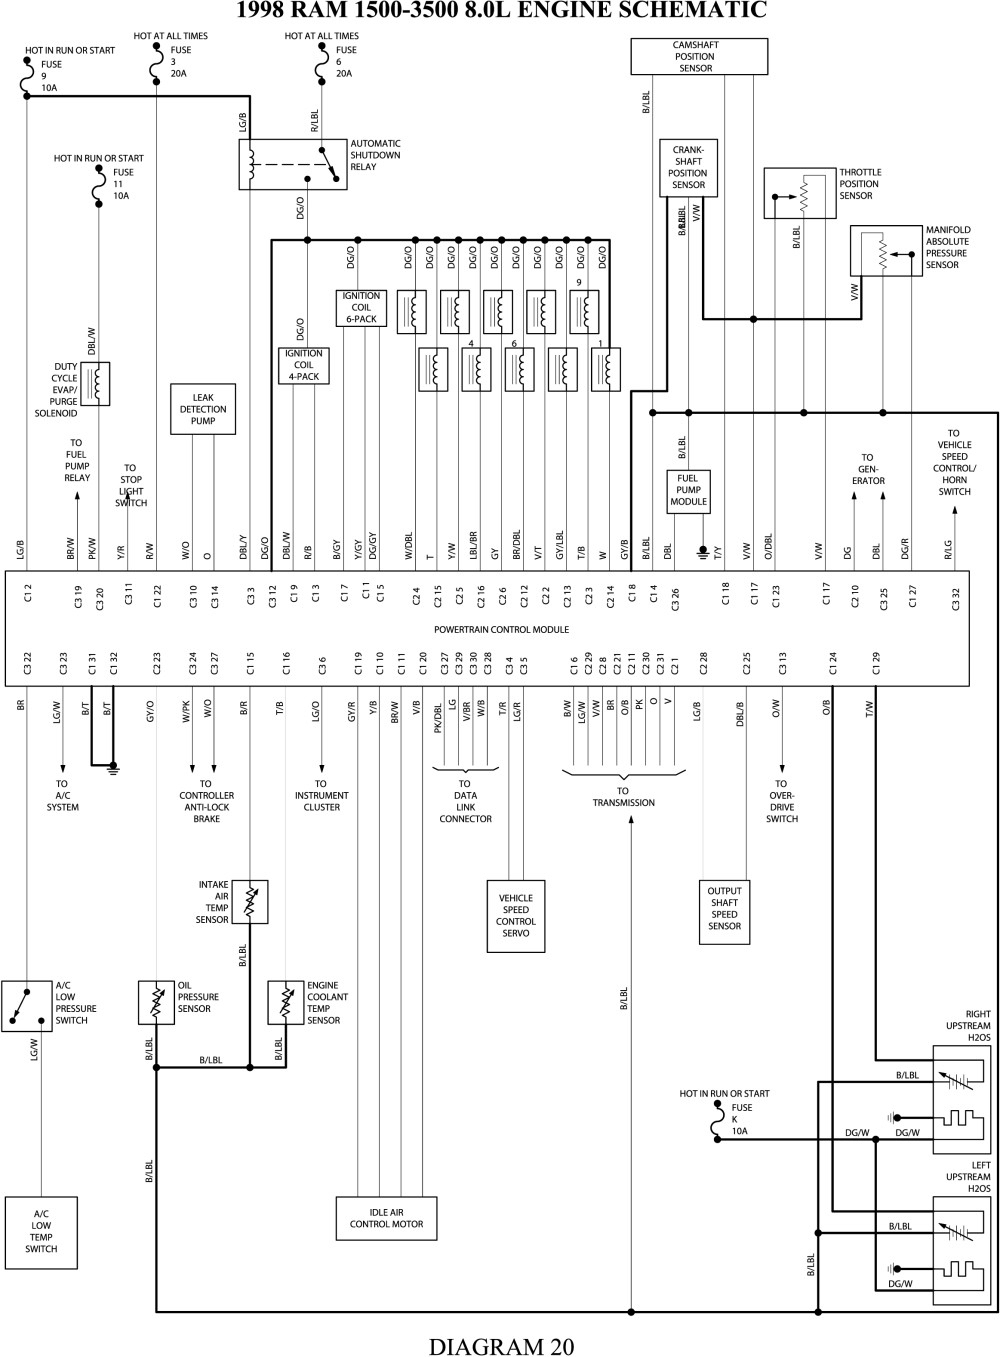 1997 Dodge Ram 1500 Alternator Wiring Diagram | Free Wiring Diagram - Dodge Alternator Wiring Diagram